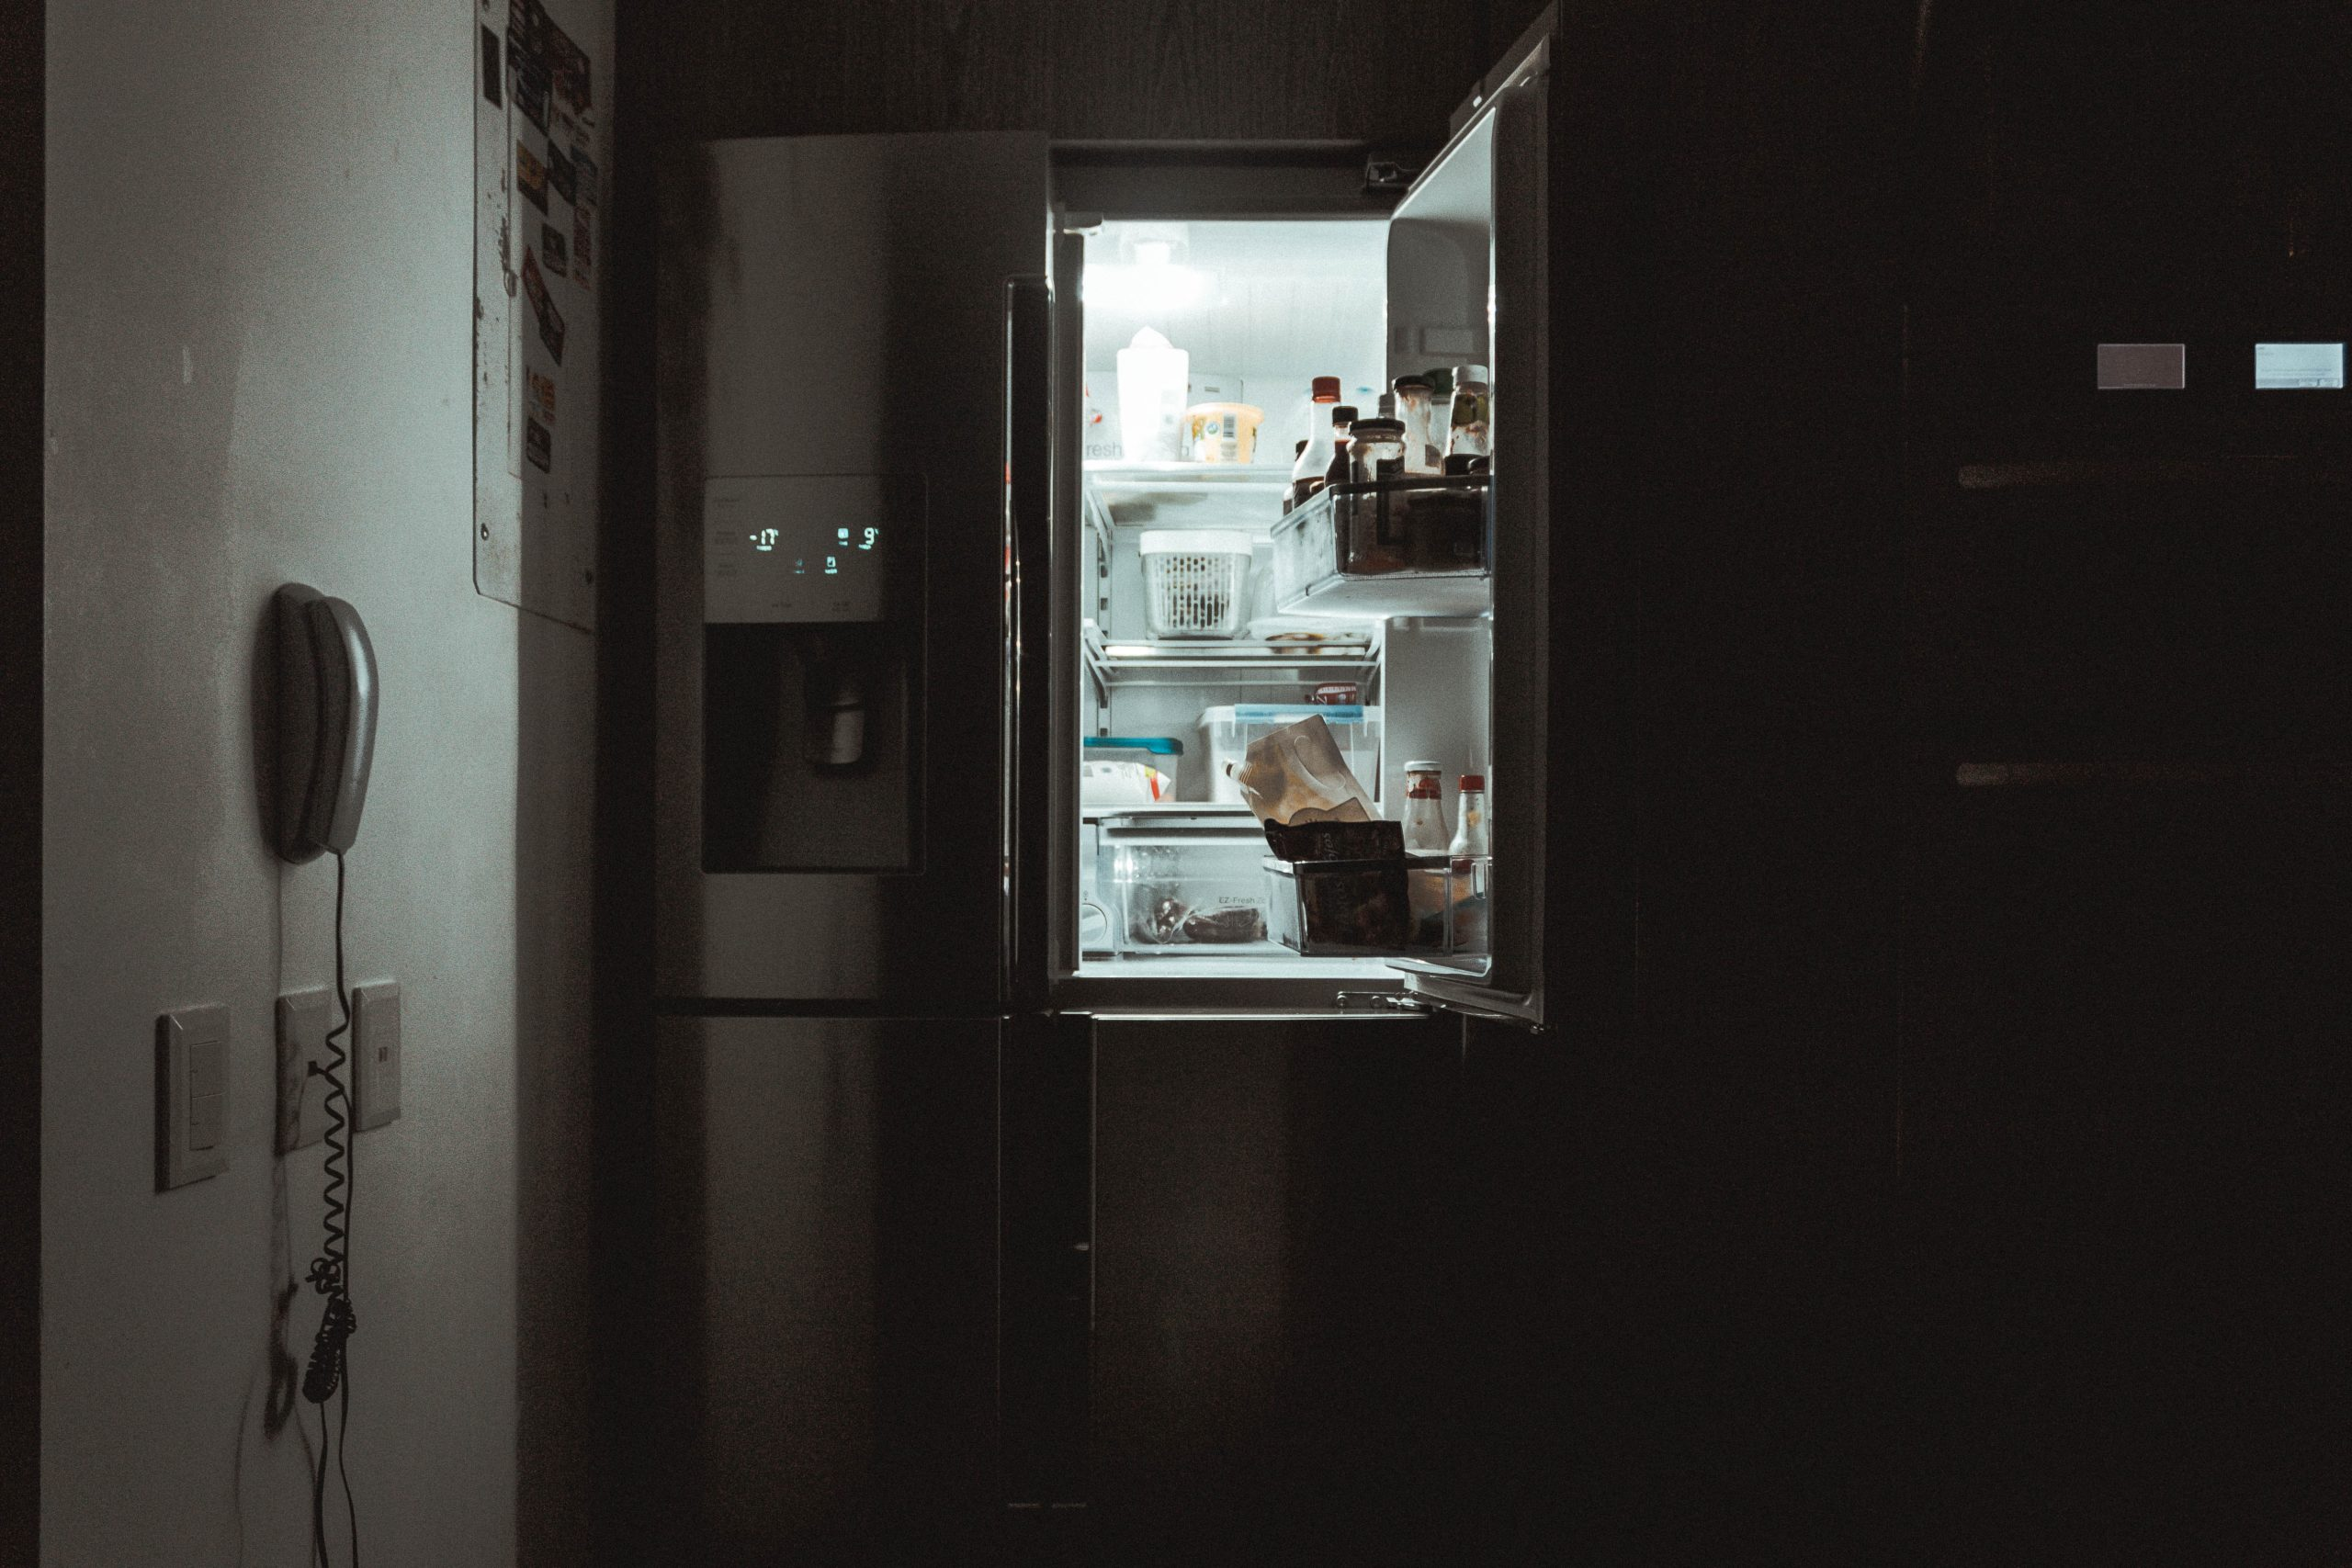 US, China commit to phase down climate-warming HFCs from refrigerators and air conditioners – but what will replace them thistime?